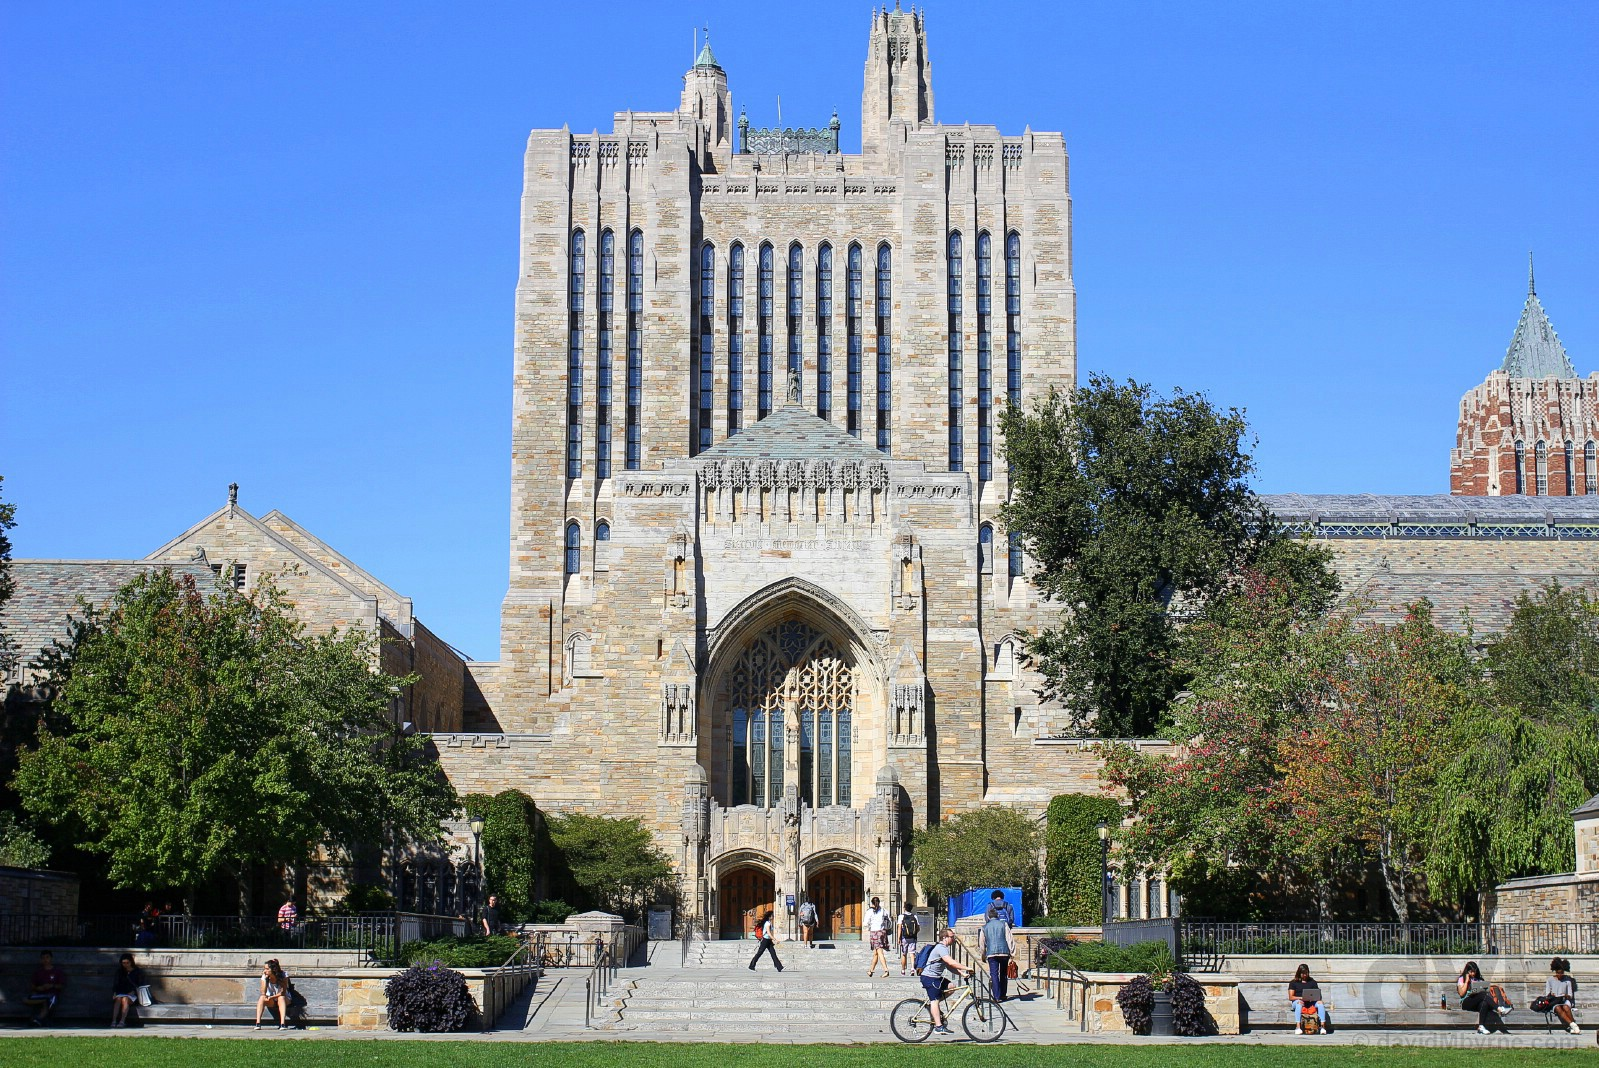 Cross Campus, Yale University, New Haven, Connecticut, USA. September 28 2017.